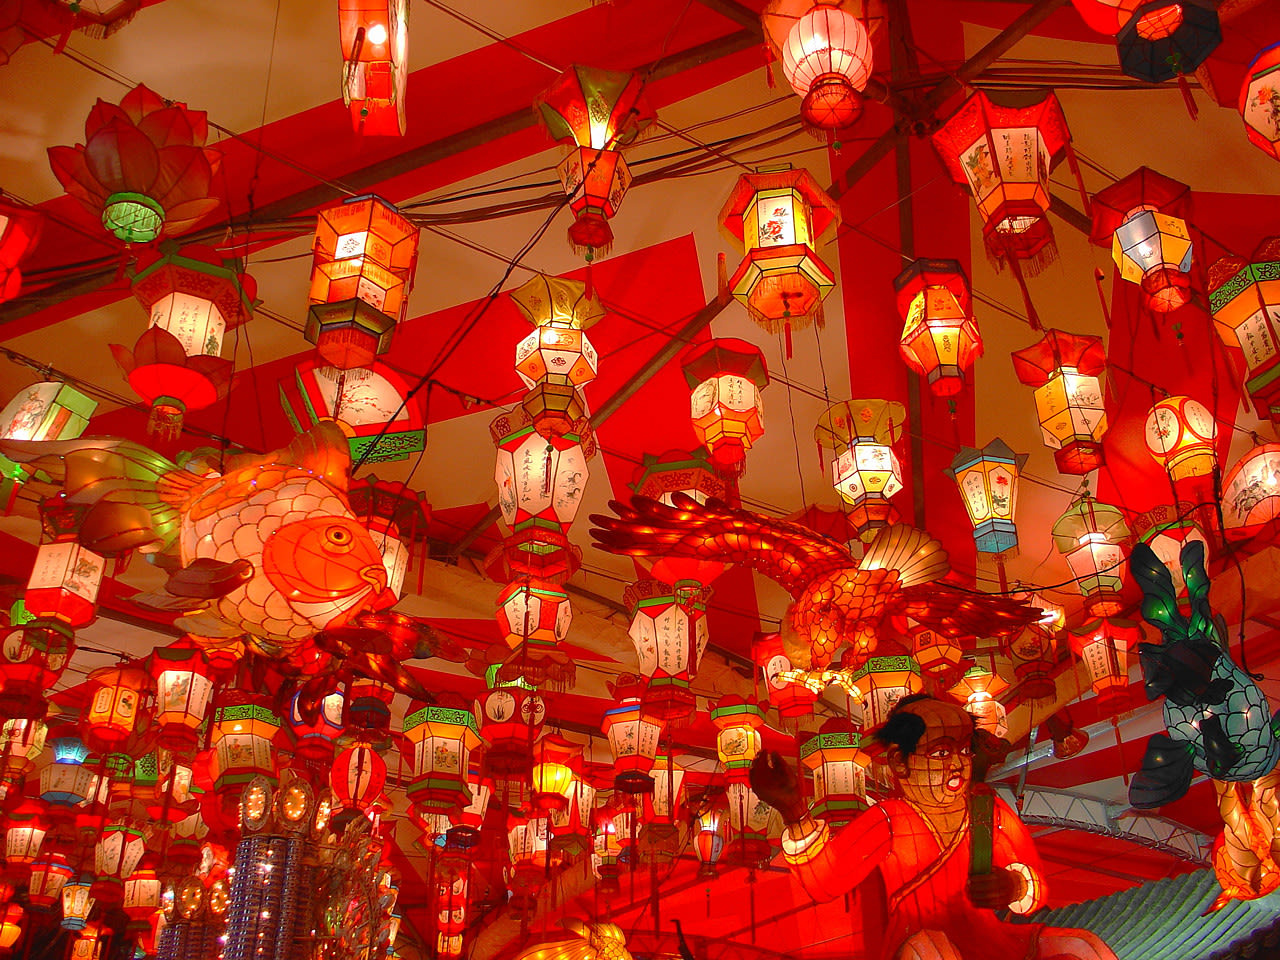 How To Avoid Crowds In Popular CNY Destinations